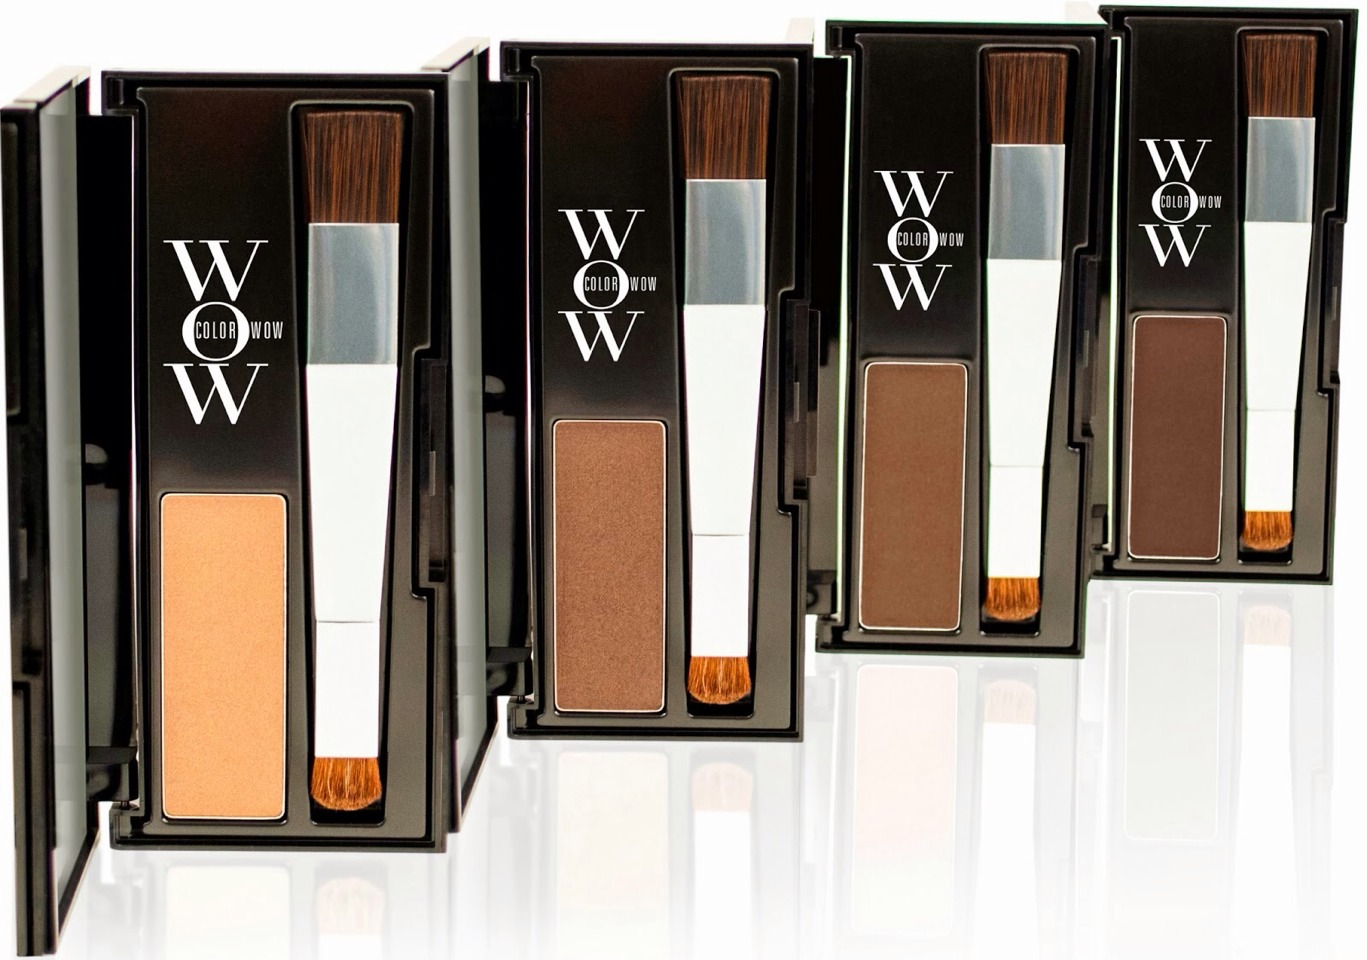 Color Wow is a powder that comes in different shades depending on your hair color. It helps blend in your roots with the rest of your hair without having to damage your hair with dye!